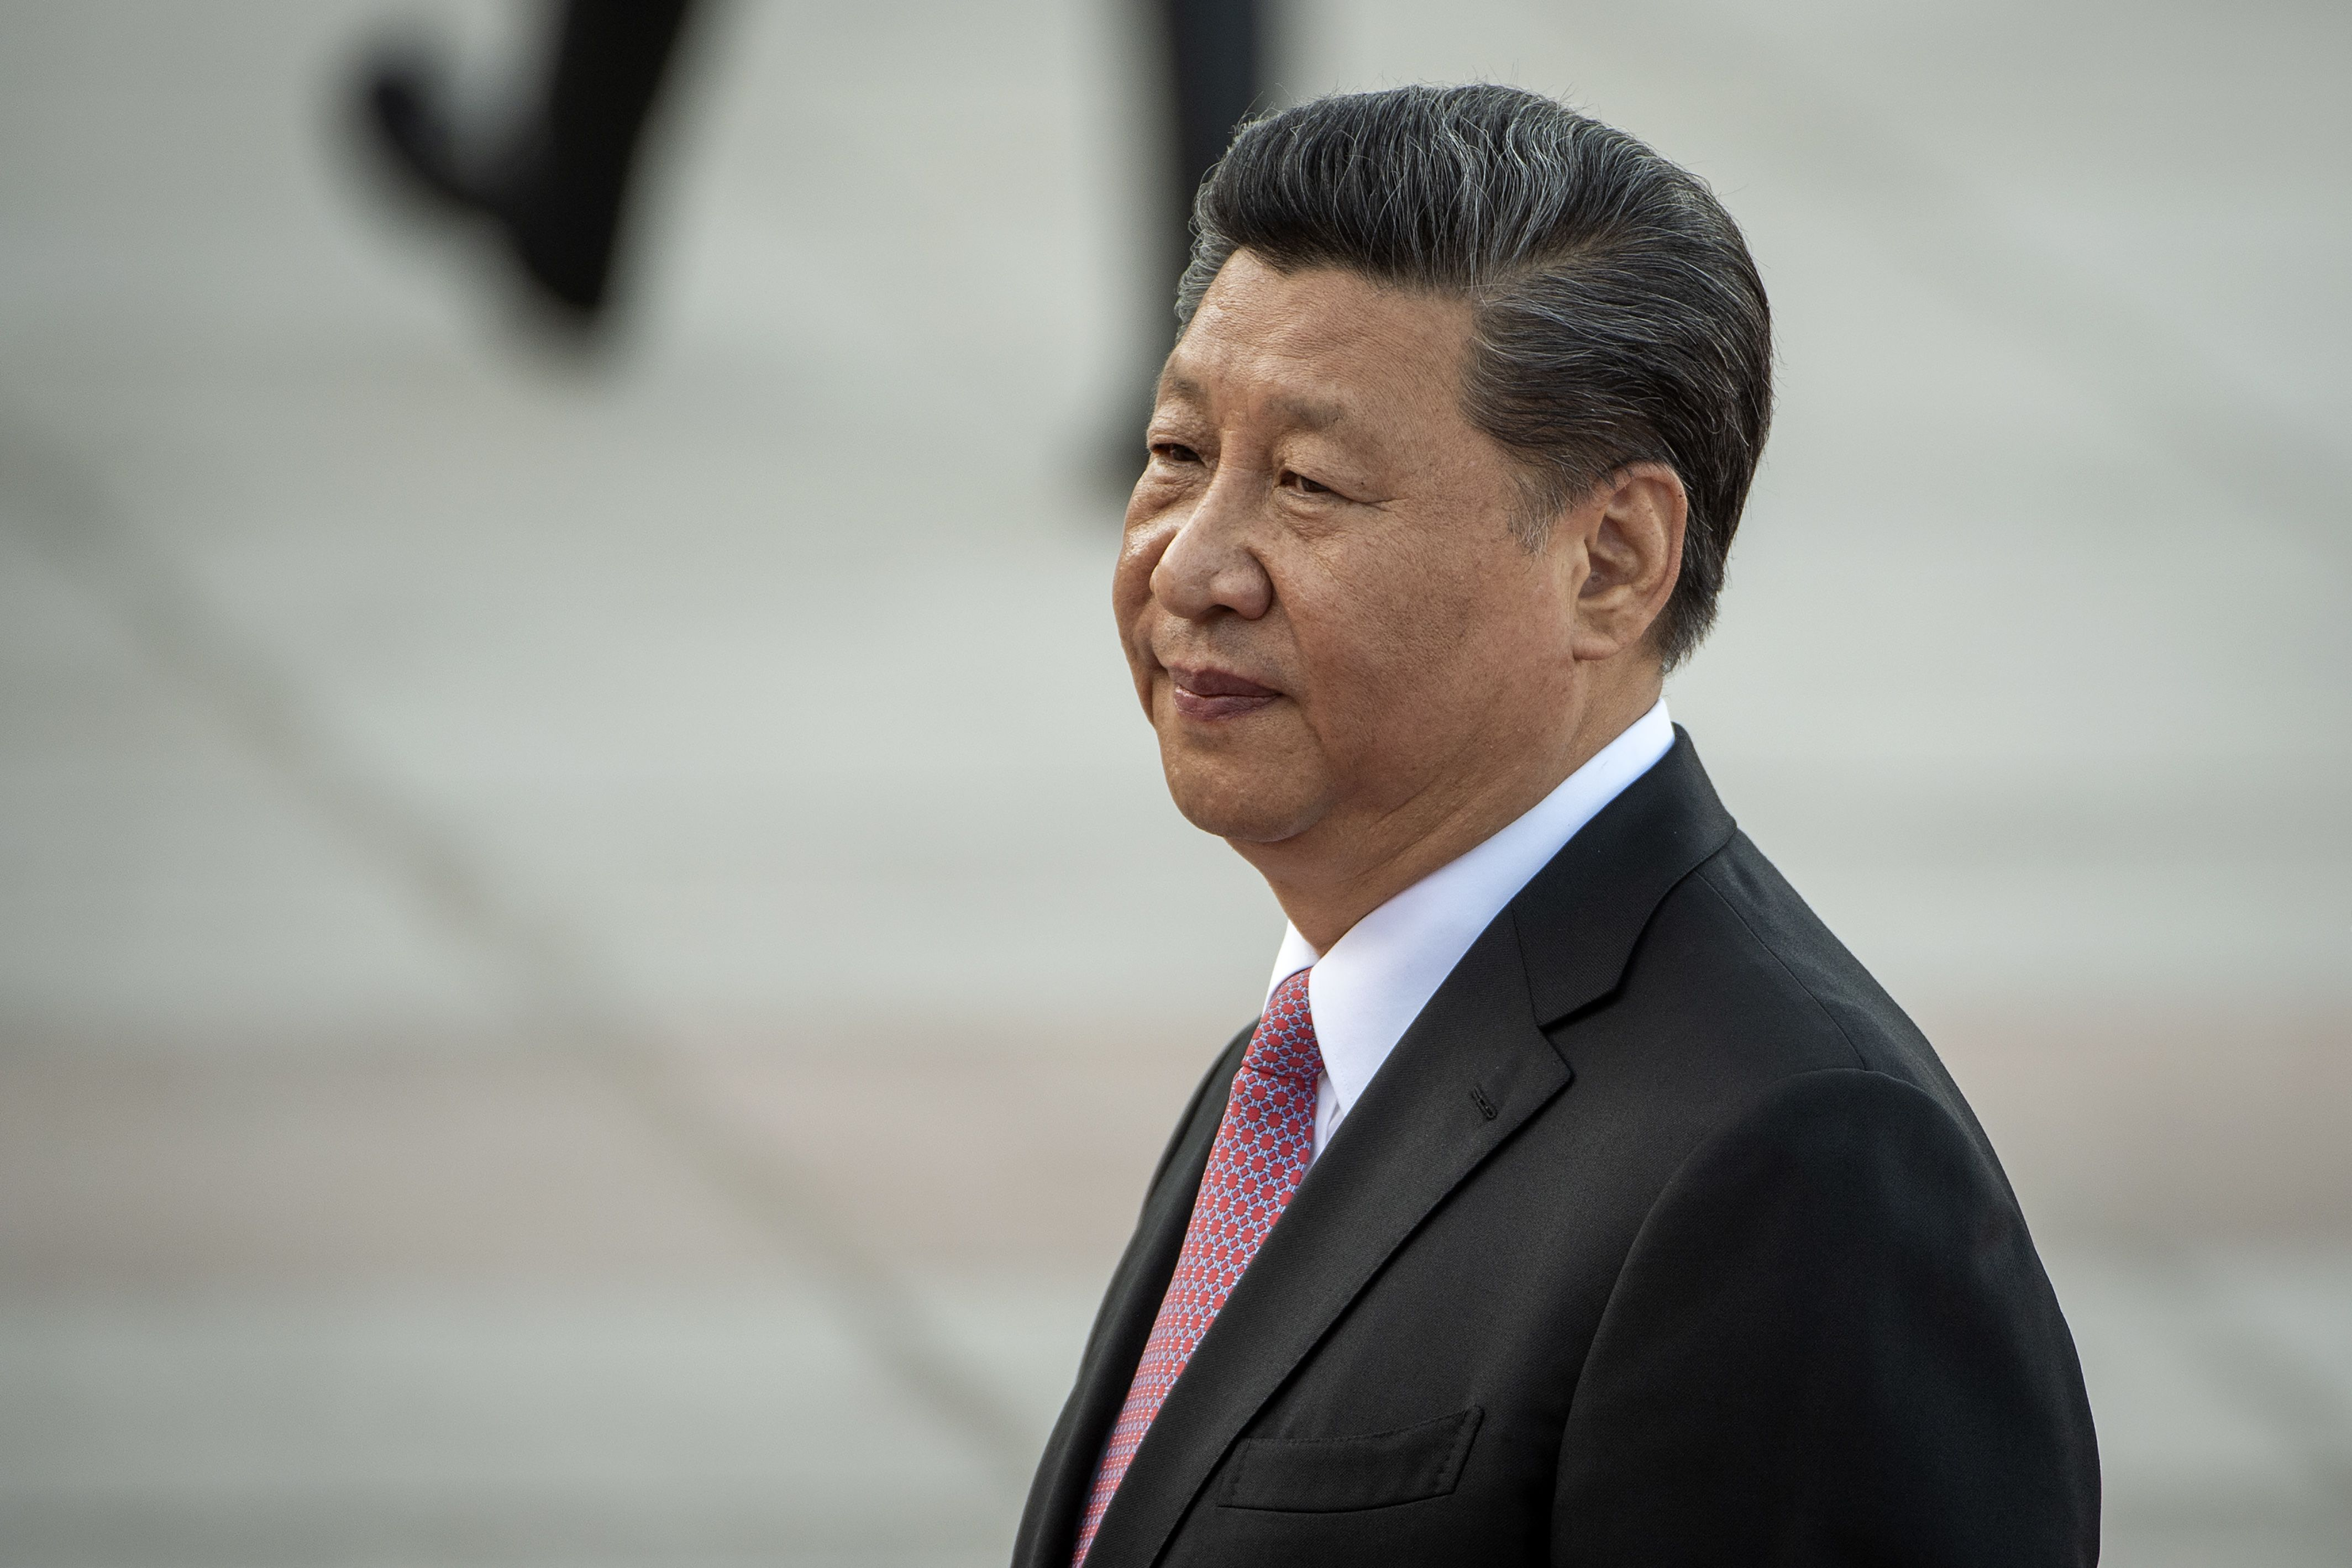 Chinese President Xi Jinping attends a welcome ceremony at the Great Hall of the People in Beijing on May 28, 2019.